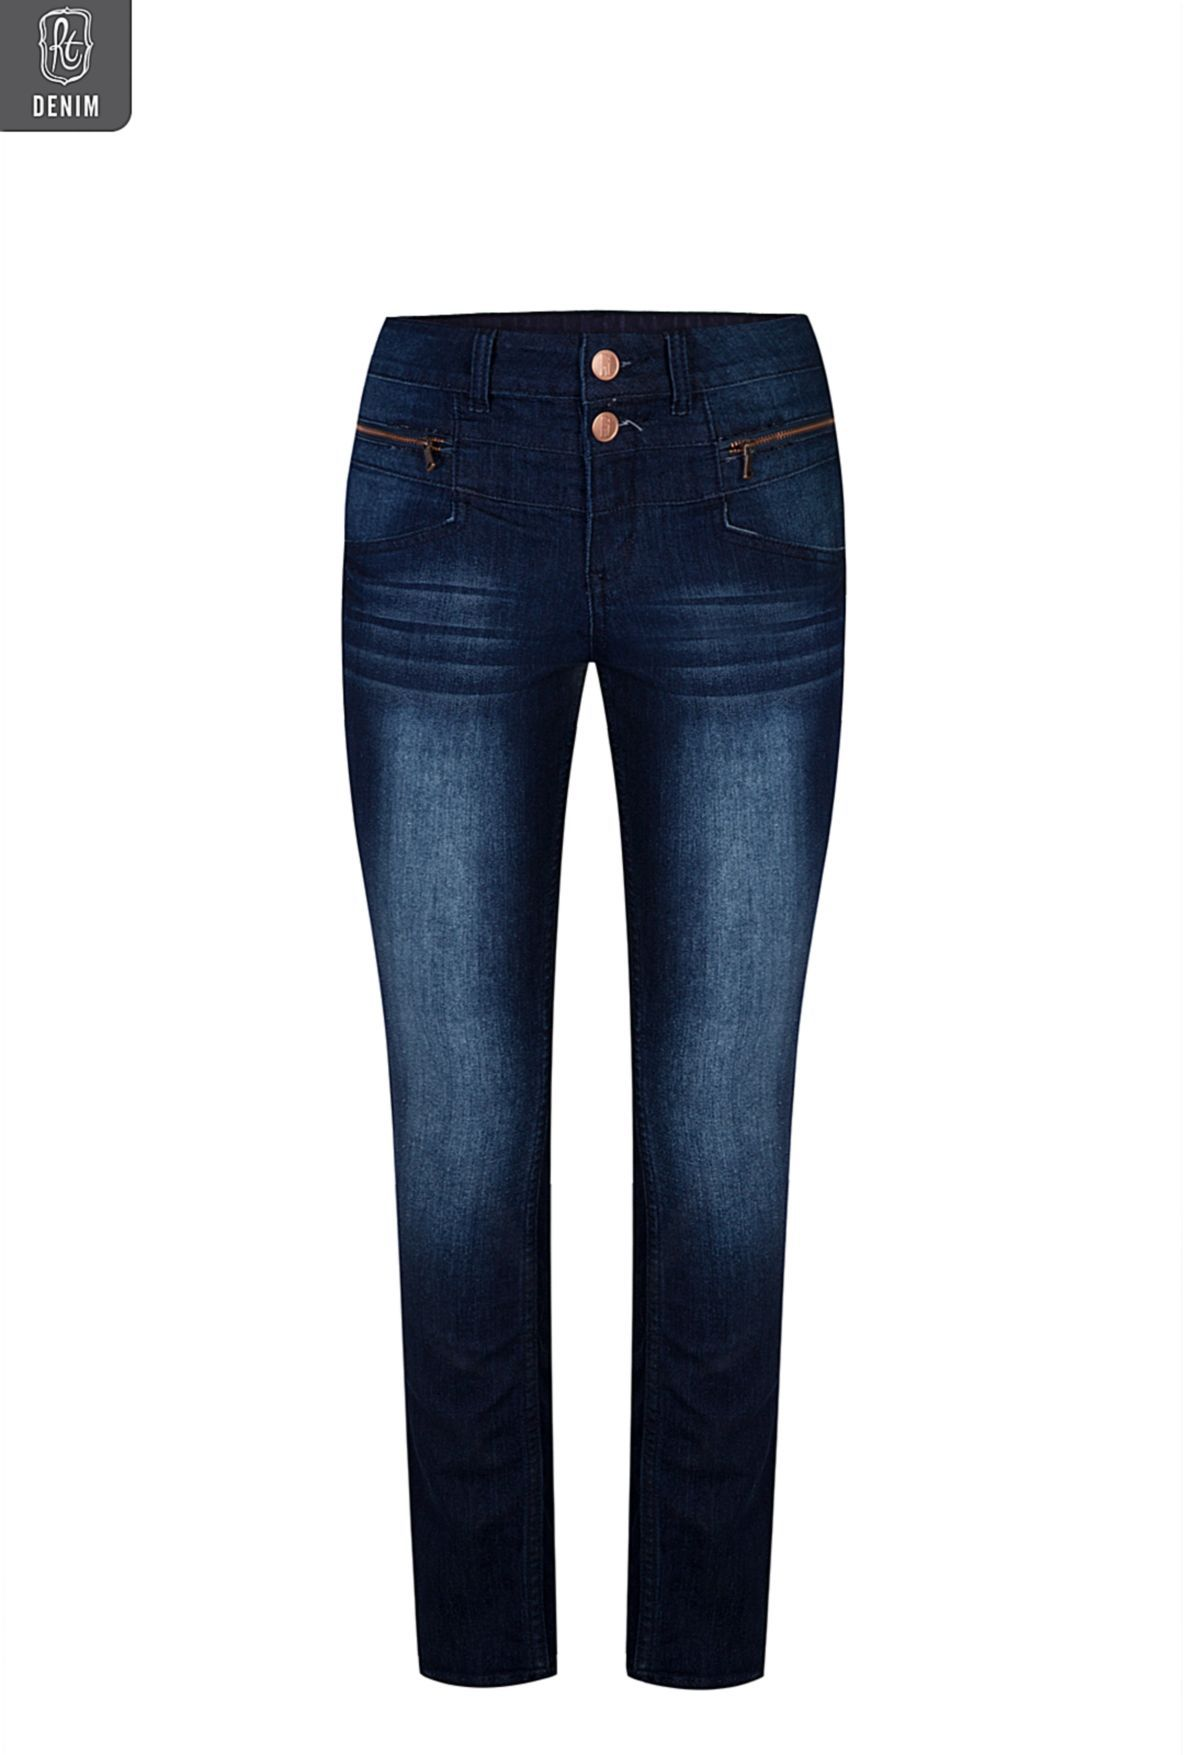 MR PRICE high-waisted skinny jeans (R160) | Jeans | Pinterest ...